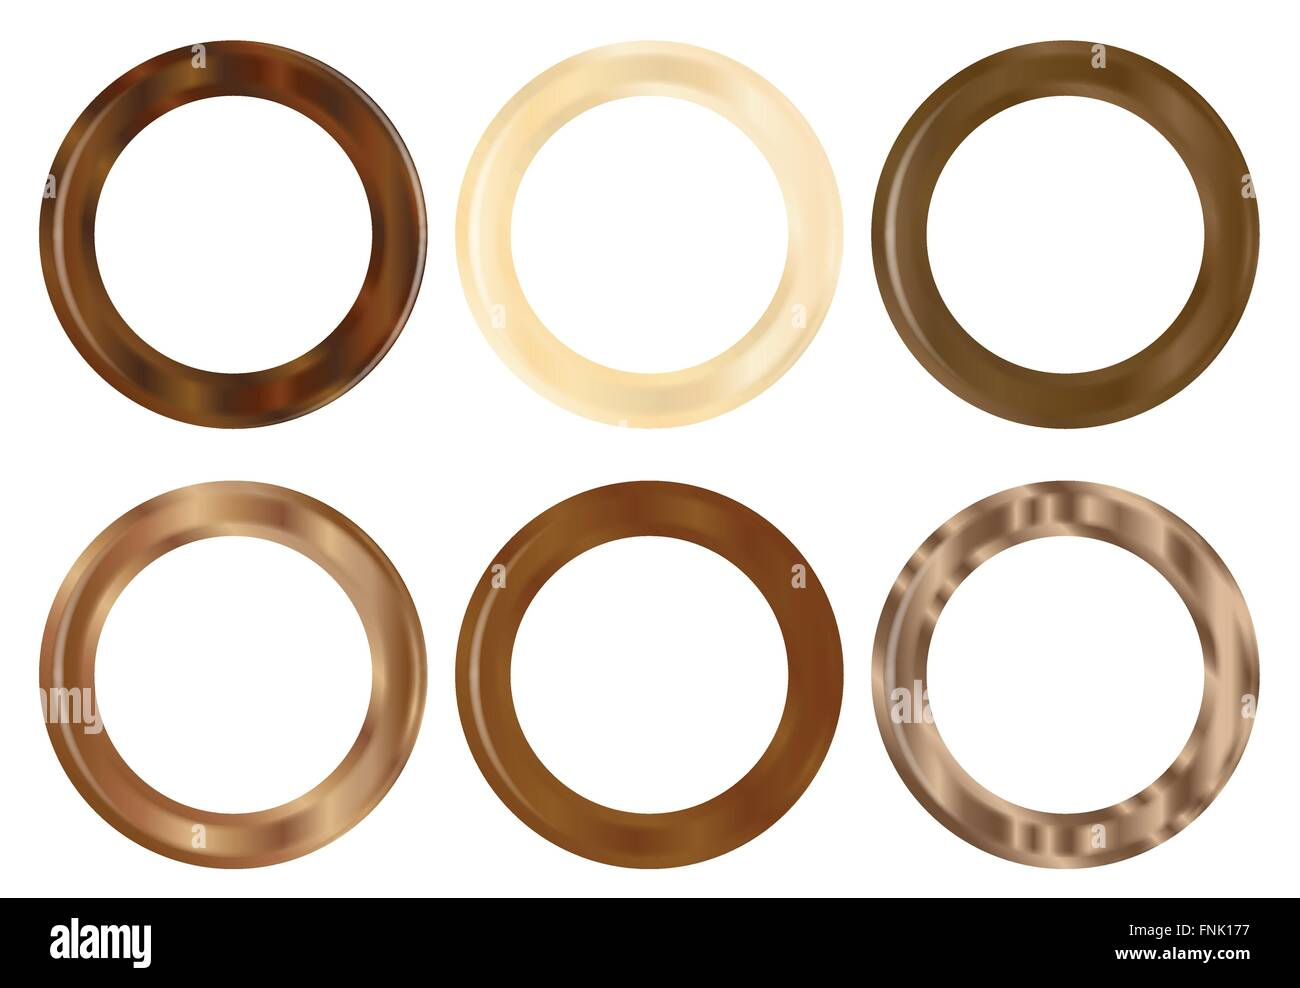 A selection of 6 wooden curtain rings - Stock Vector